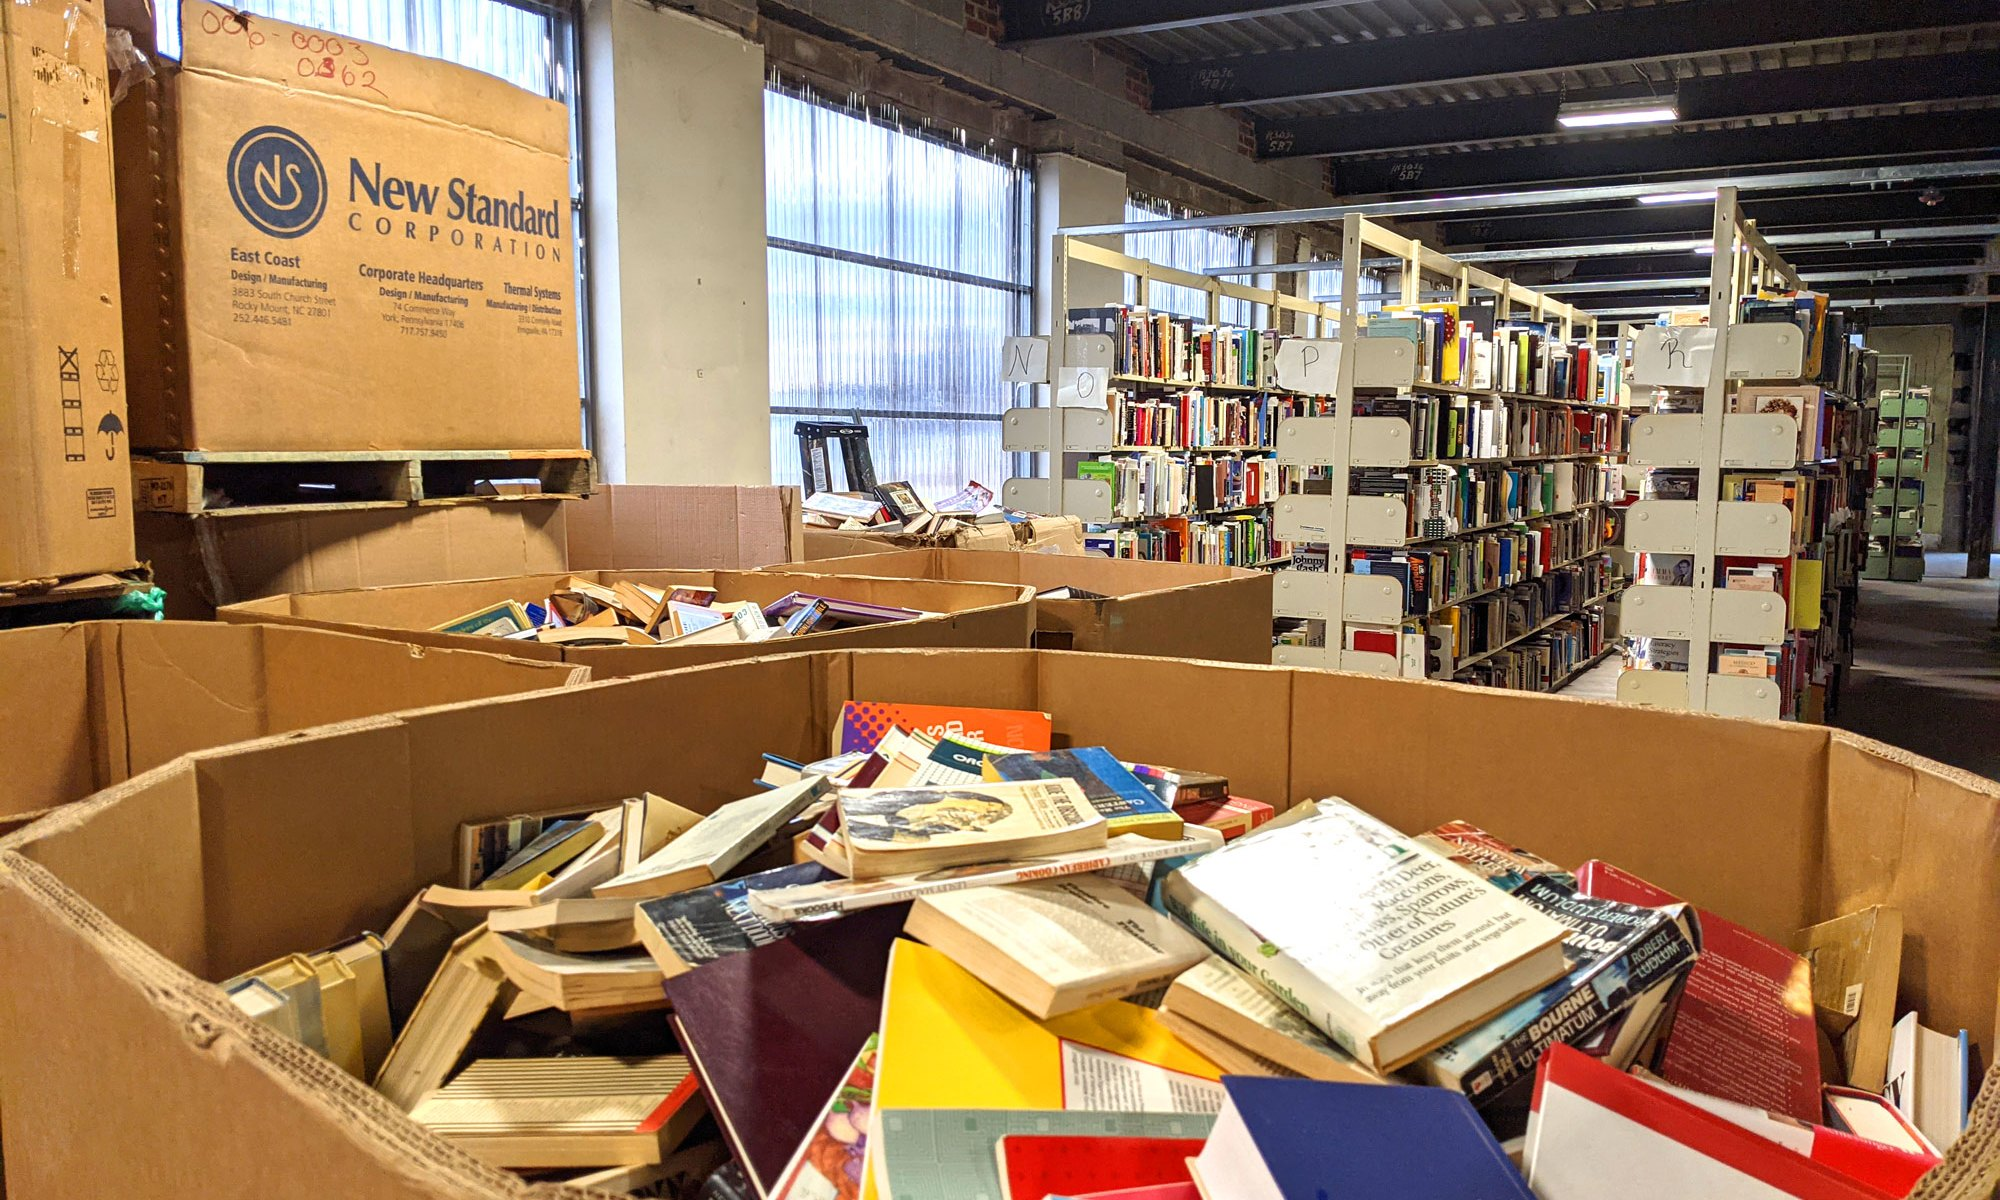 Warehouse with books inside of a large cardboard container and also on industrial shelving